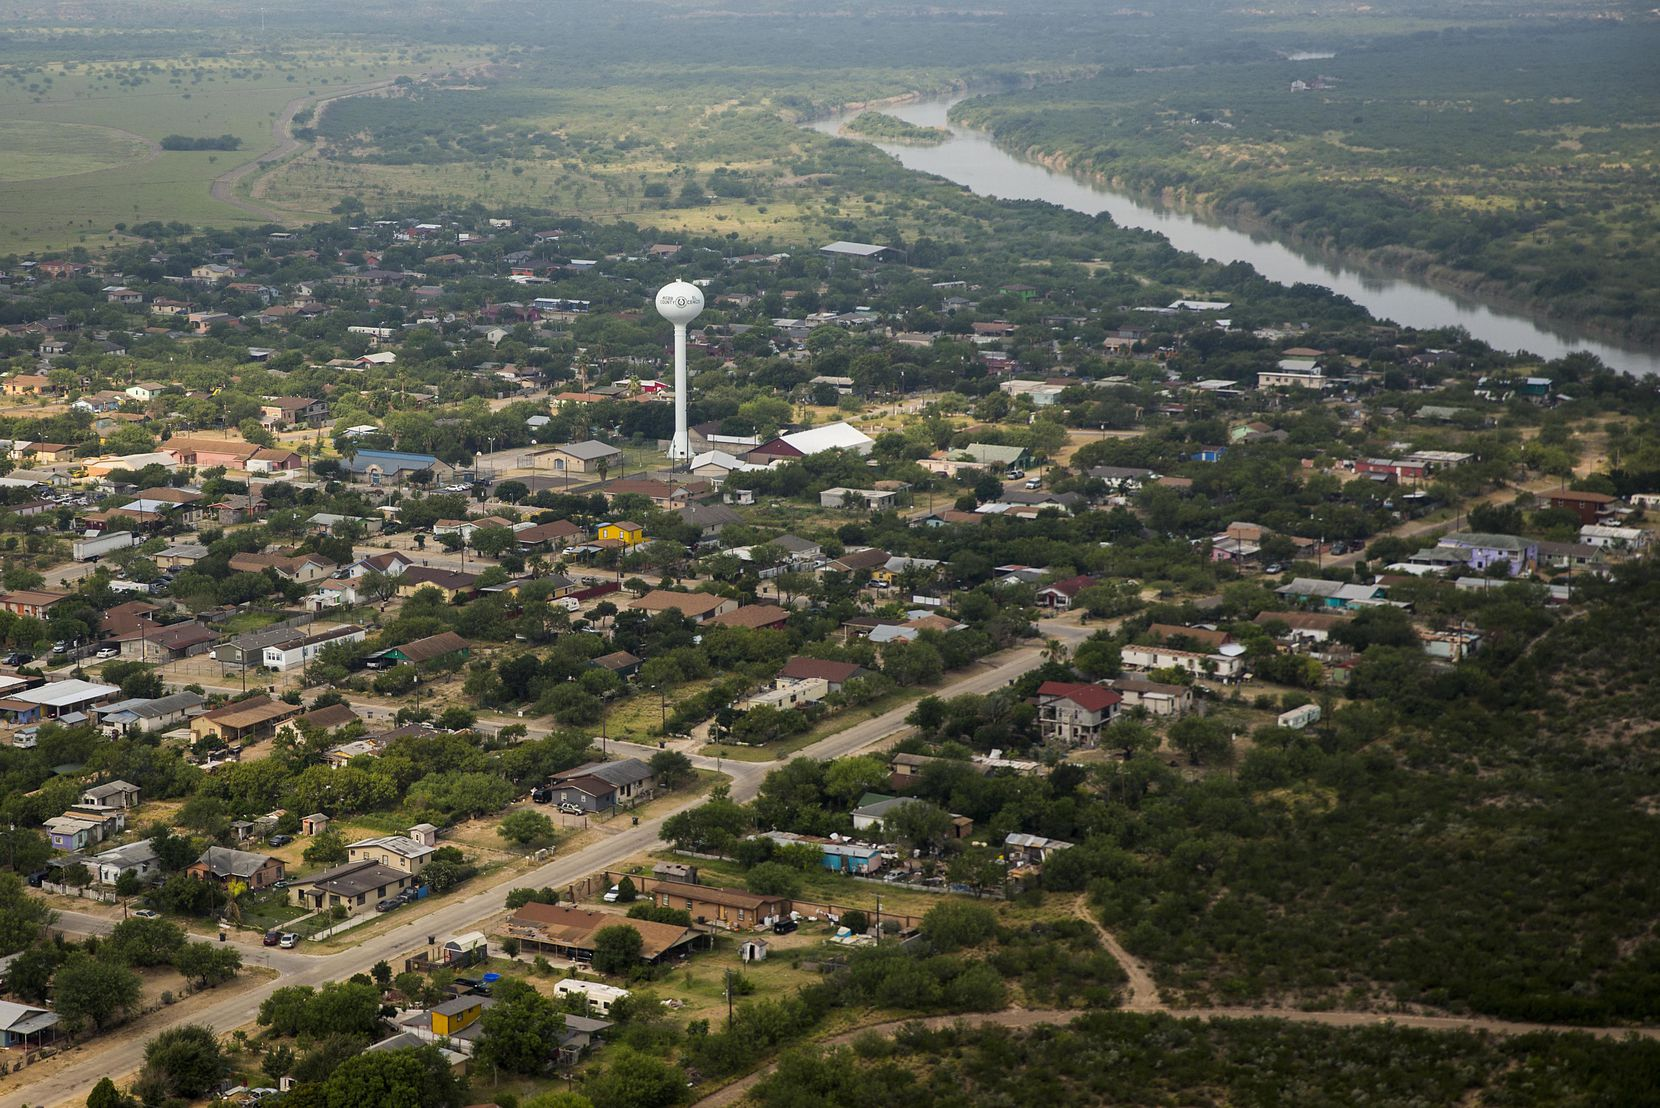 El Cenizo, Texas, is situated on the banks of the Rio Grande River. The town population is about 3,800.